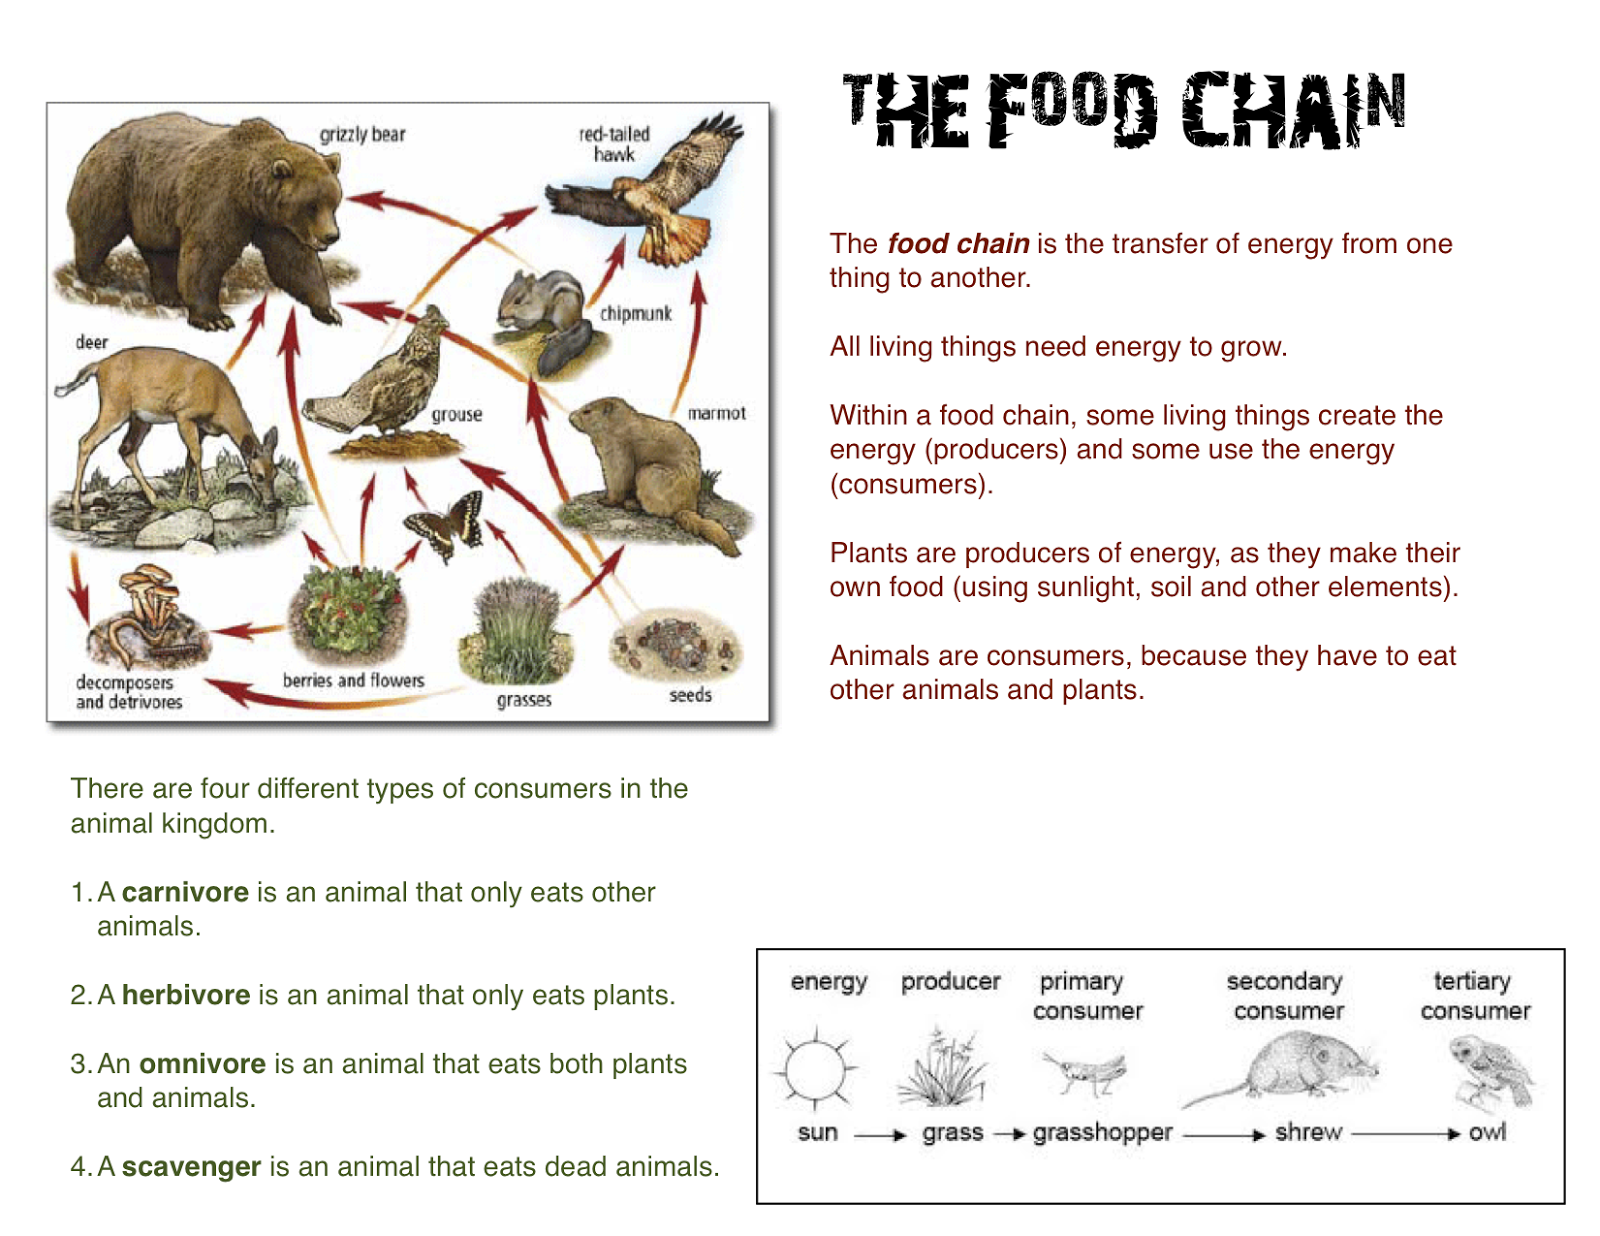 Food chain worksheets moreover 4th grade printable worksheets on food